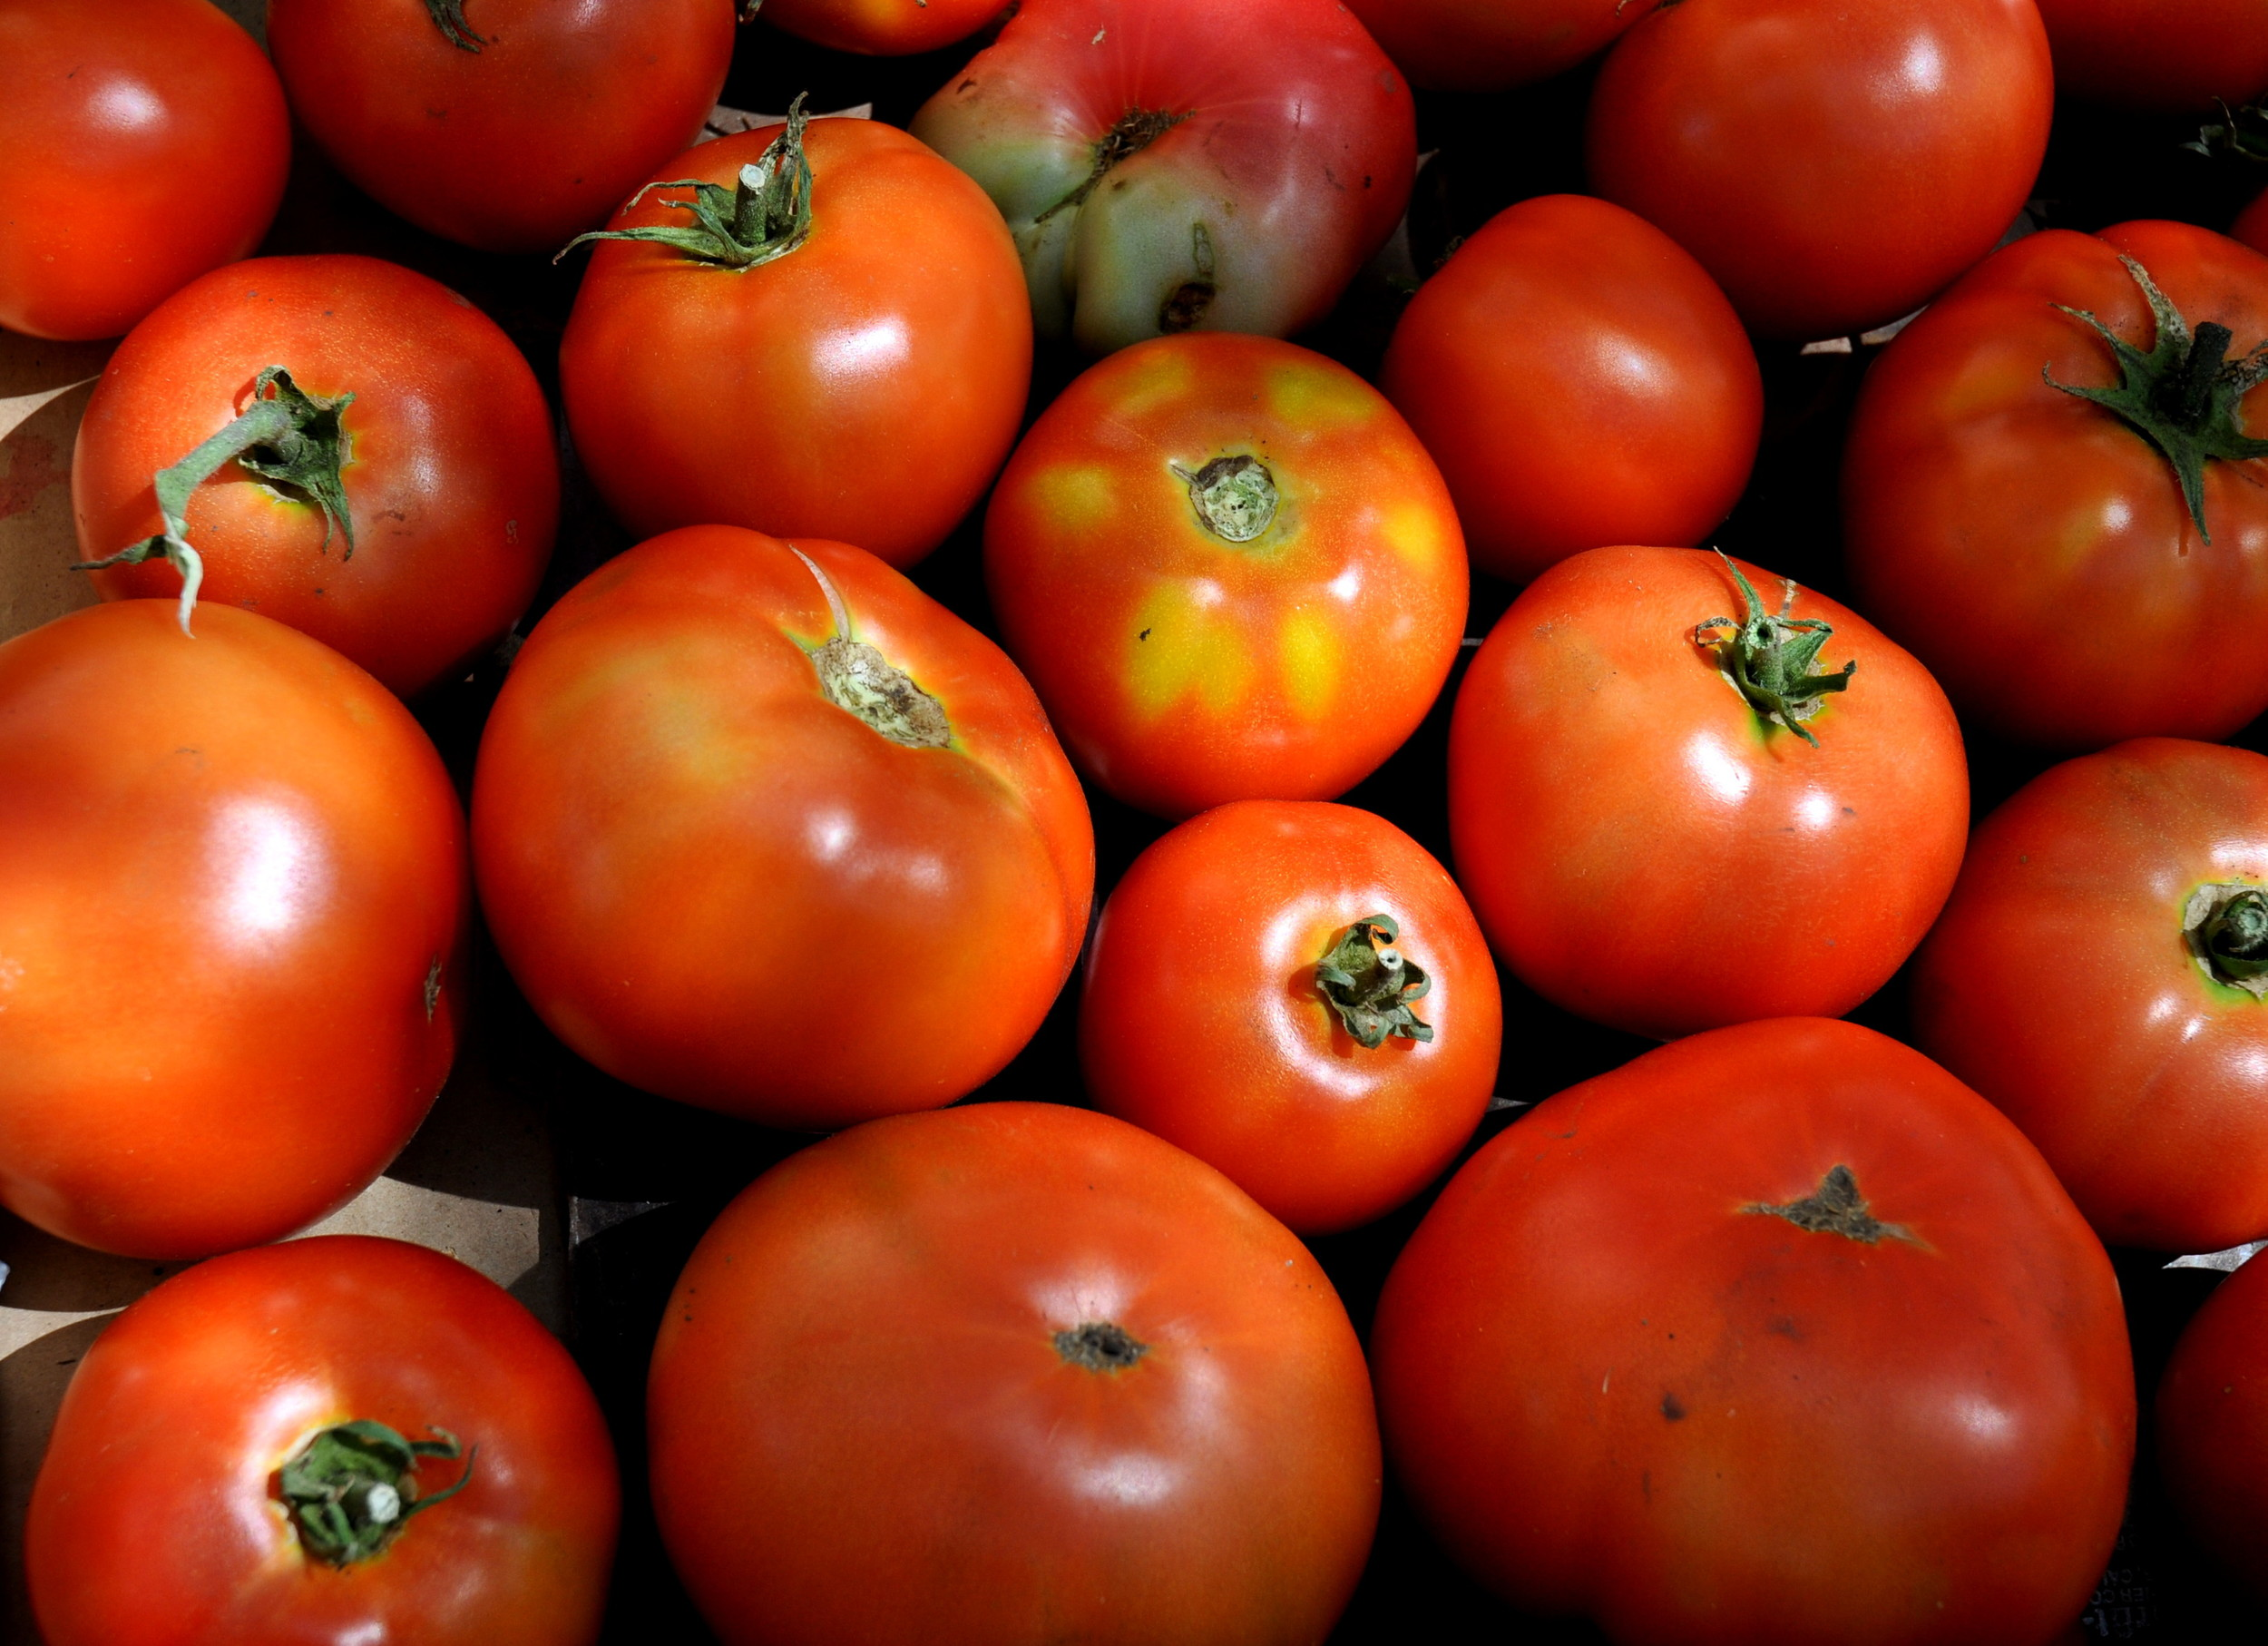 Beefsteak tomatoes from Colinwood Farms. Photo copyright 2013 by Zachary D. Lyons.